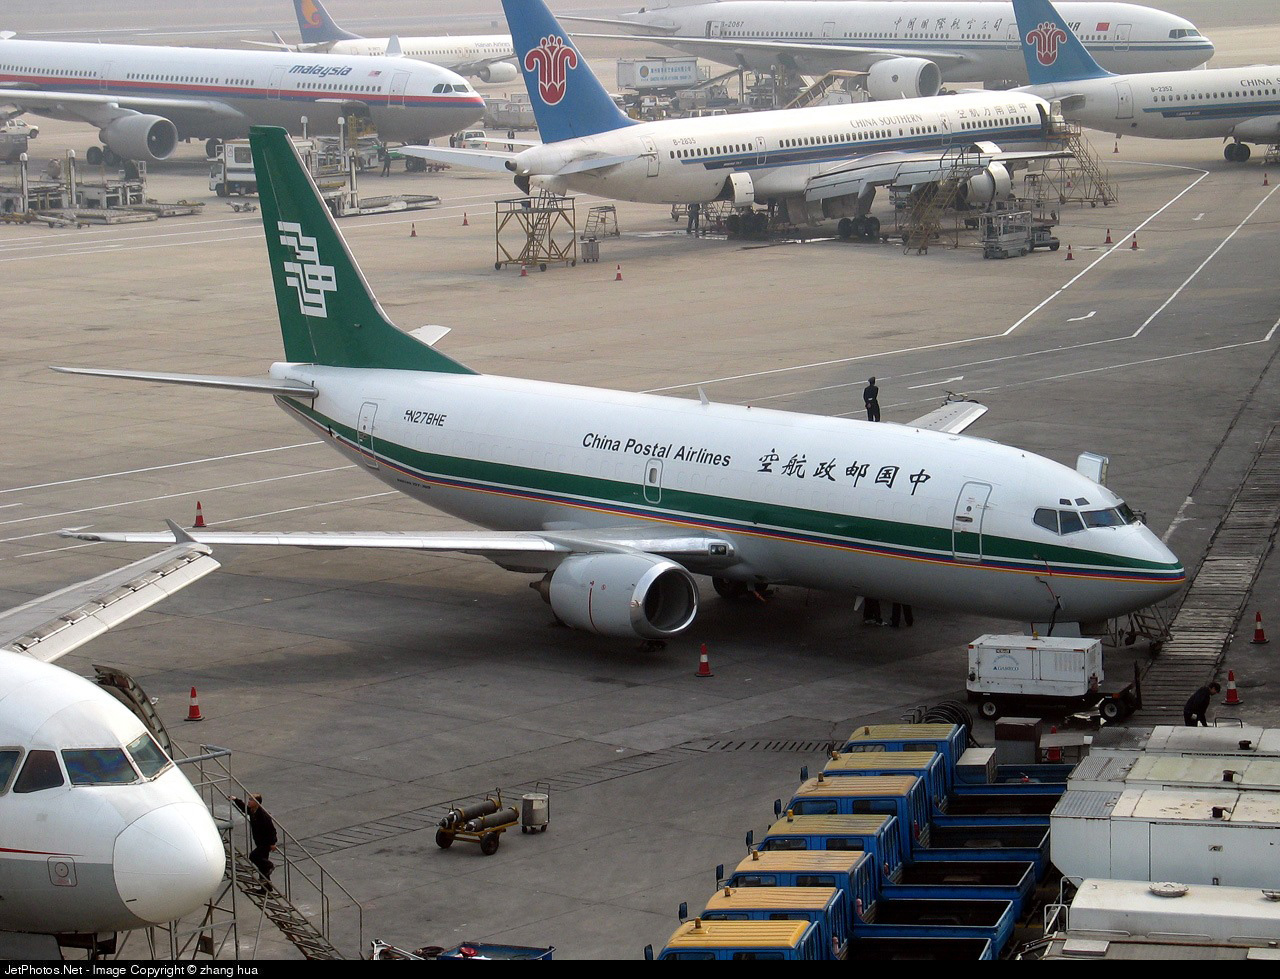 China Postal Airlines Fleet